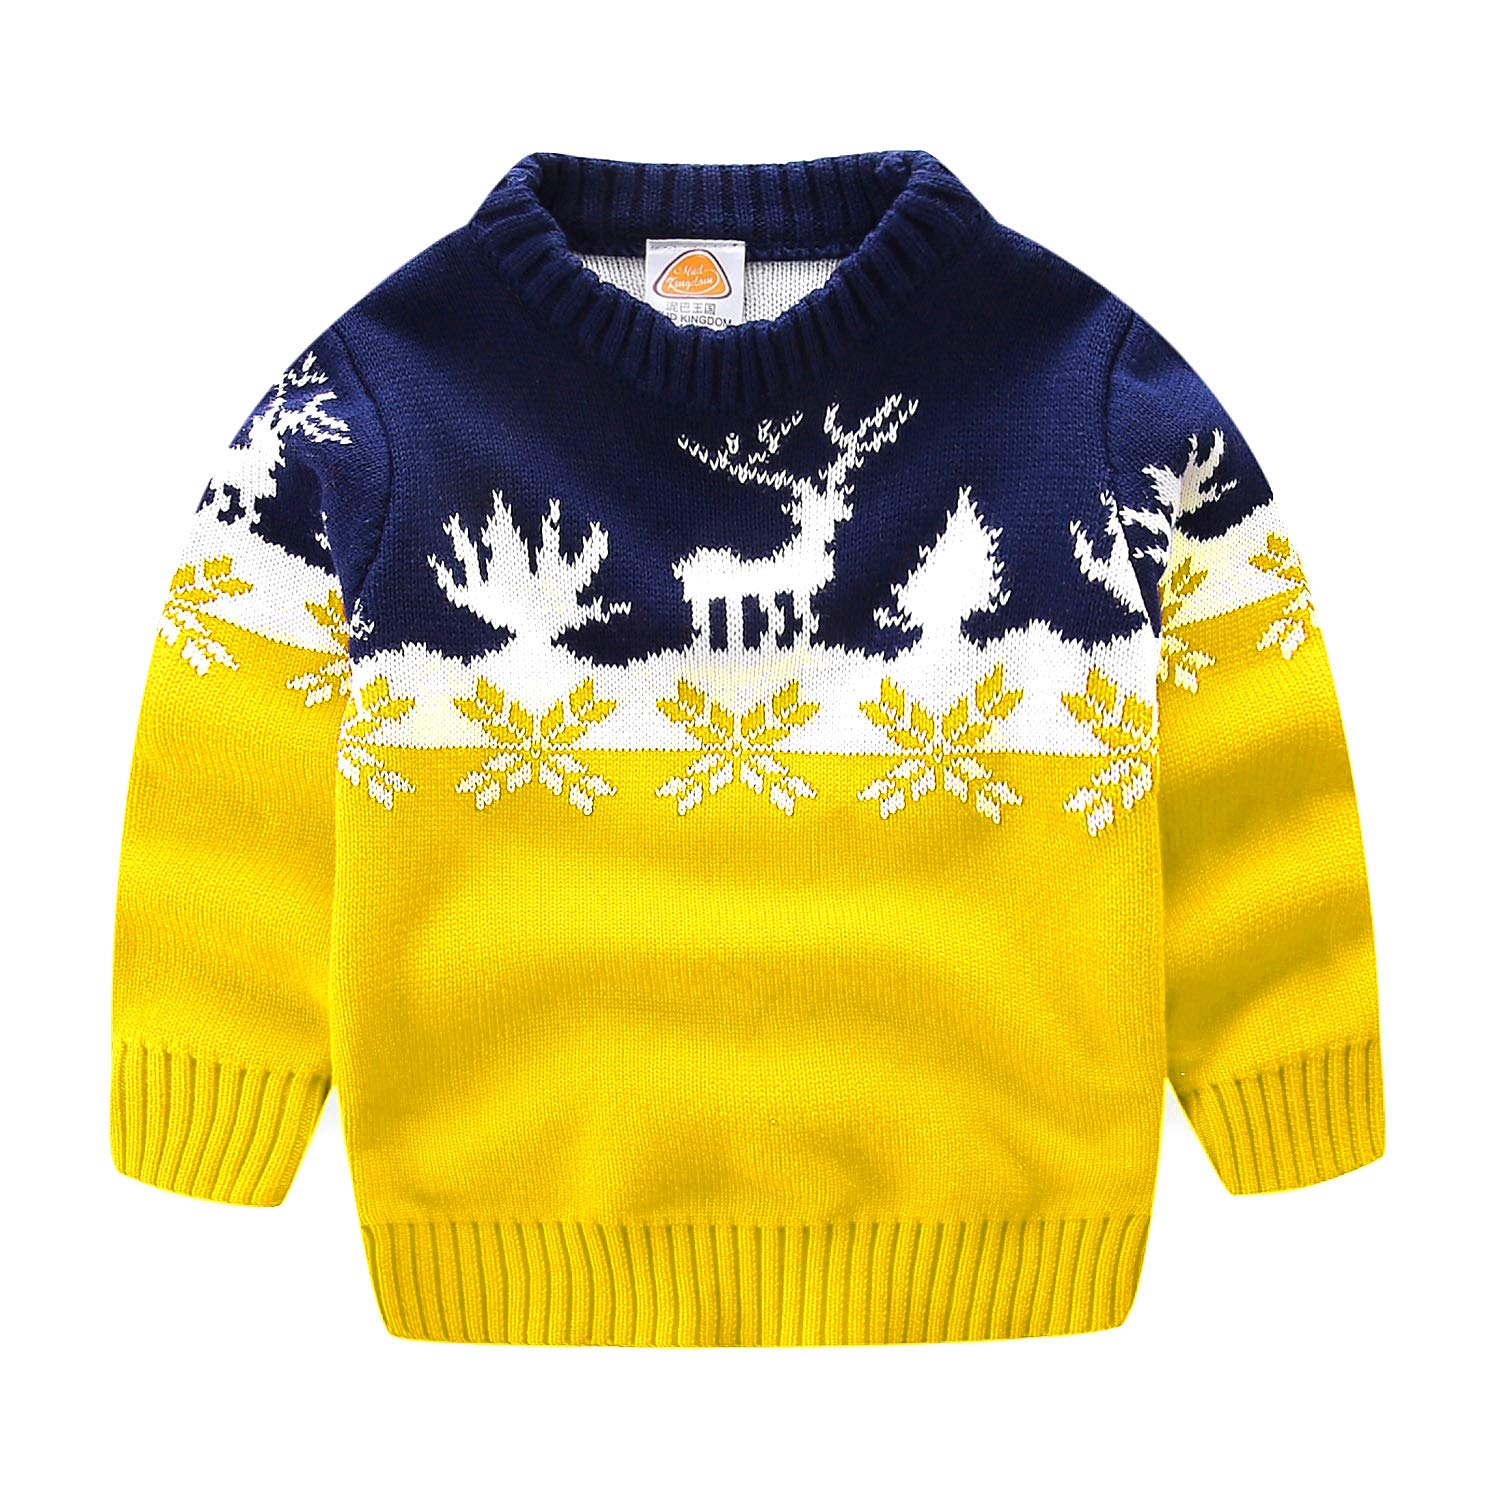 Mud Kingdom Toddler Boys Christmas Sweaters Xmas Reindeer Clothes 2T Yellow